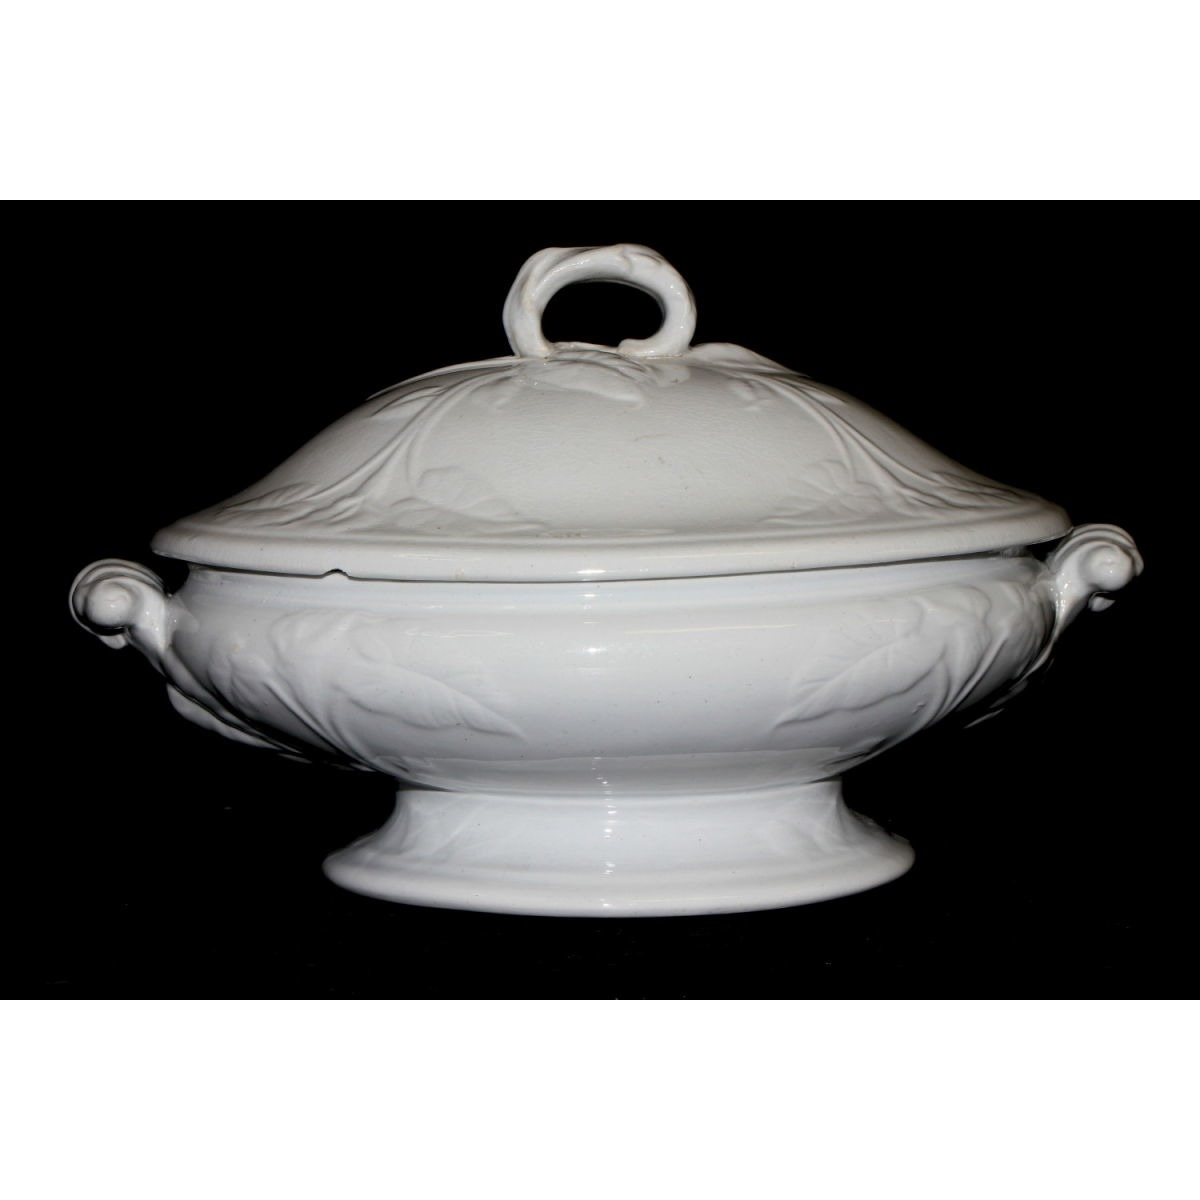 Medium-Sized Ironstone Vegetable Tureen - Morning Glory